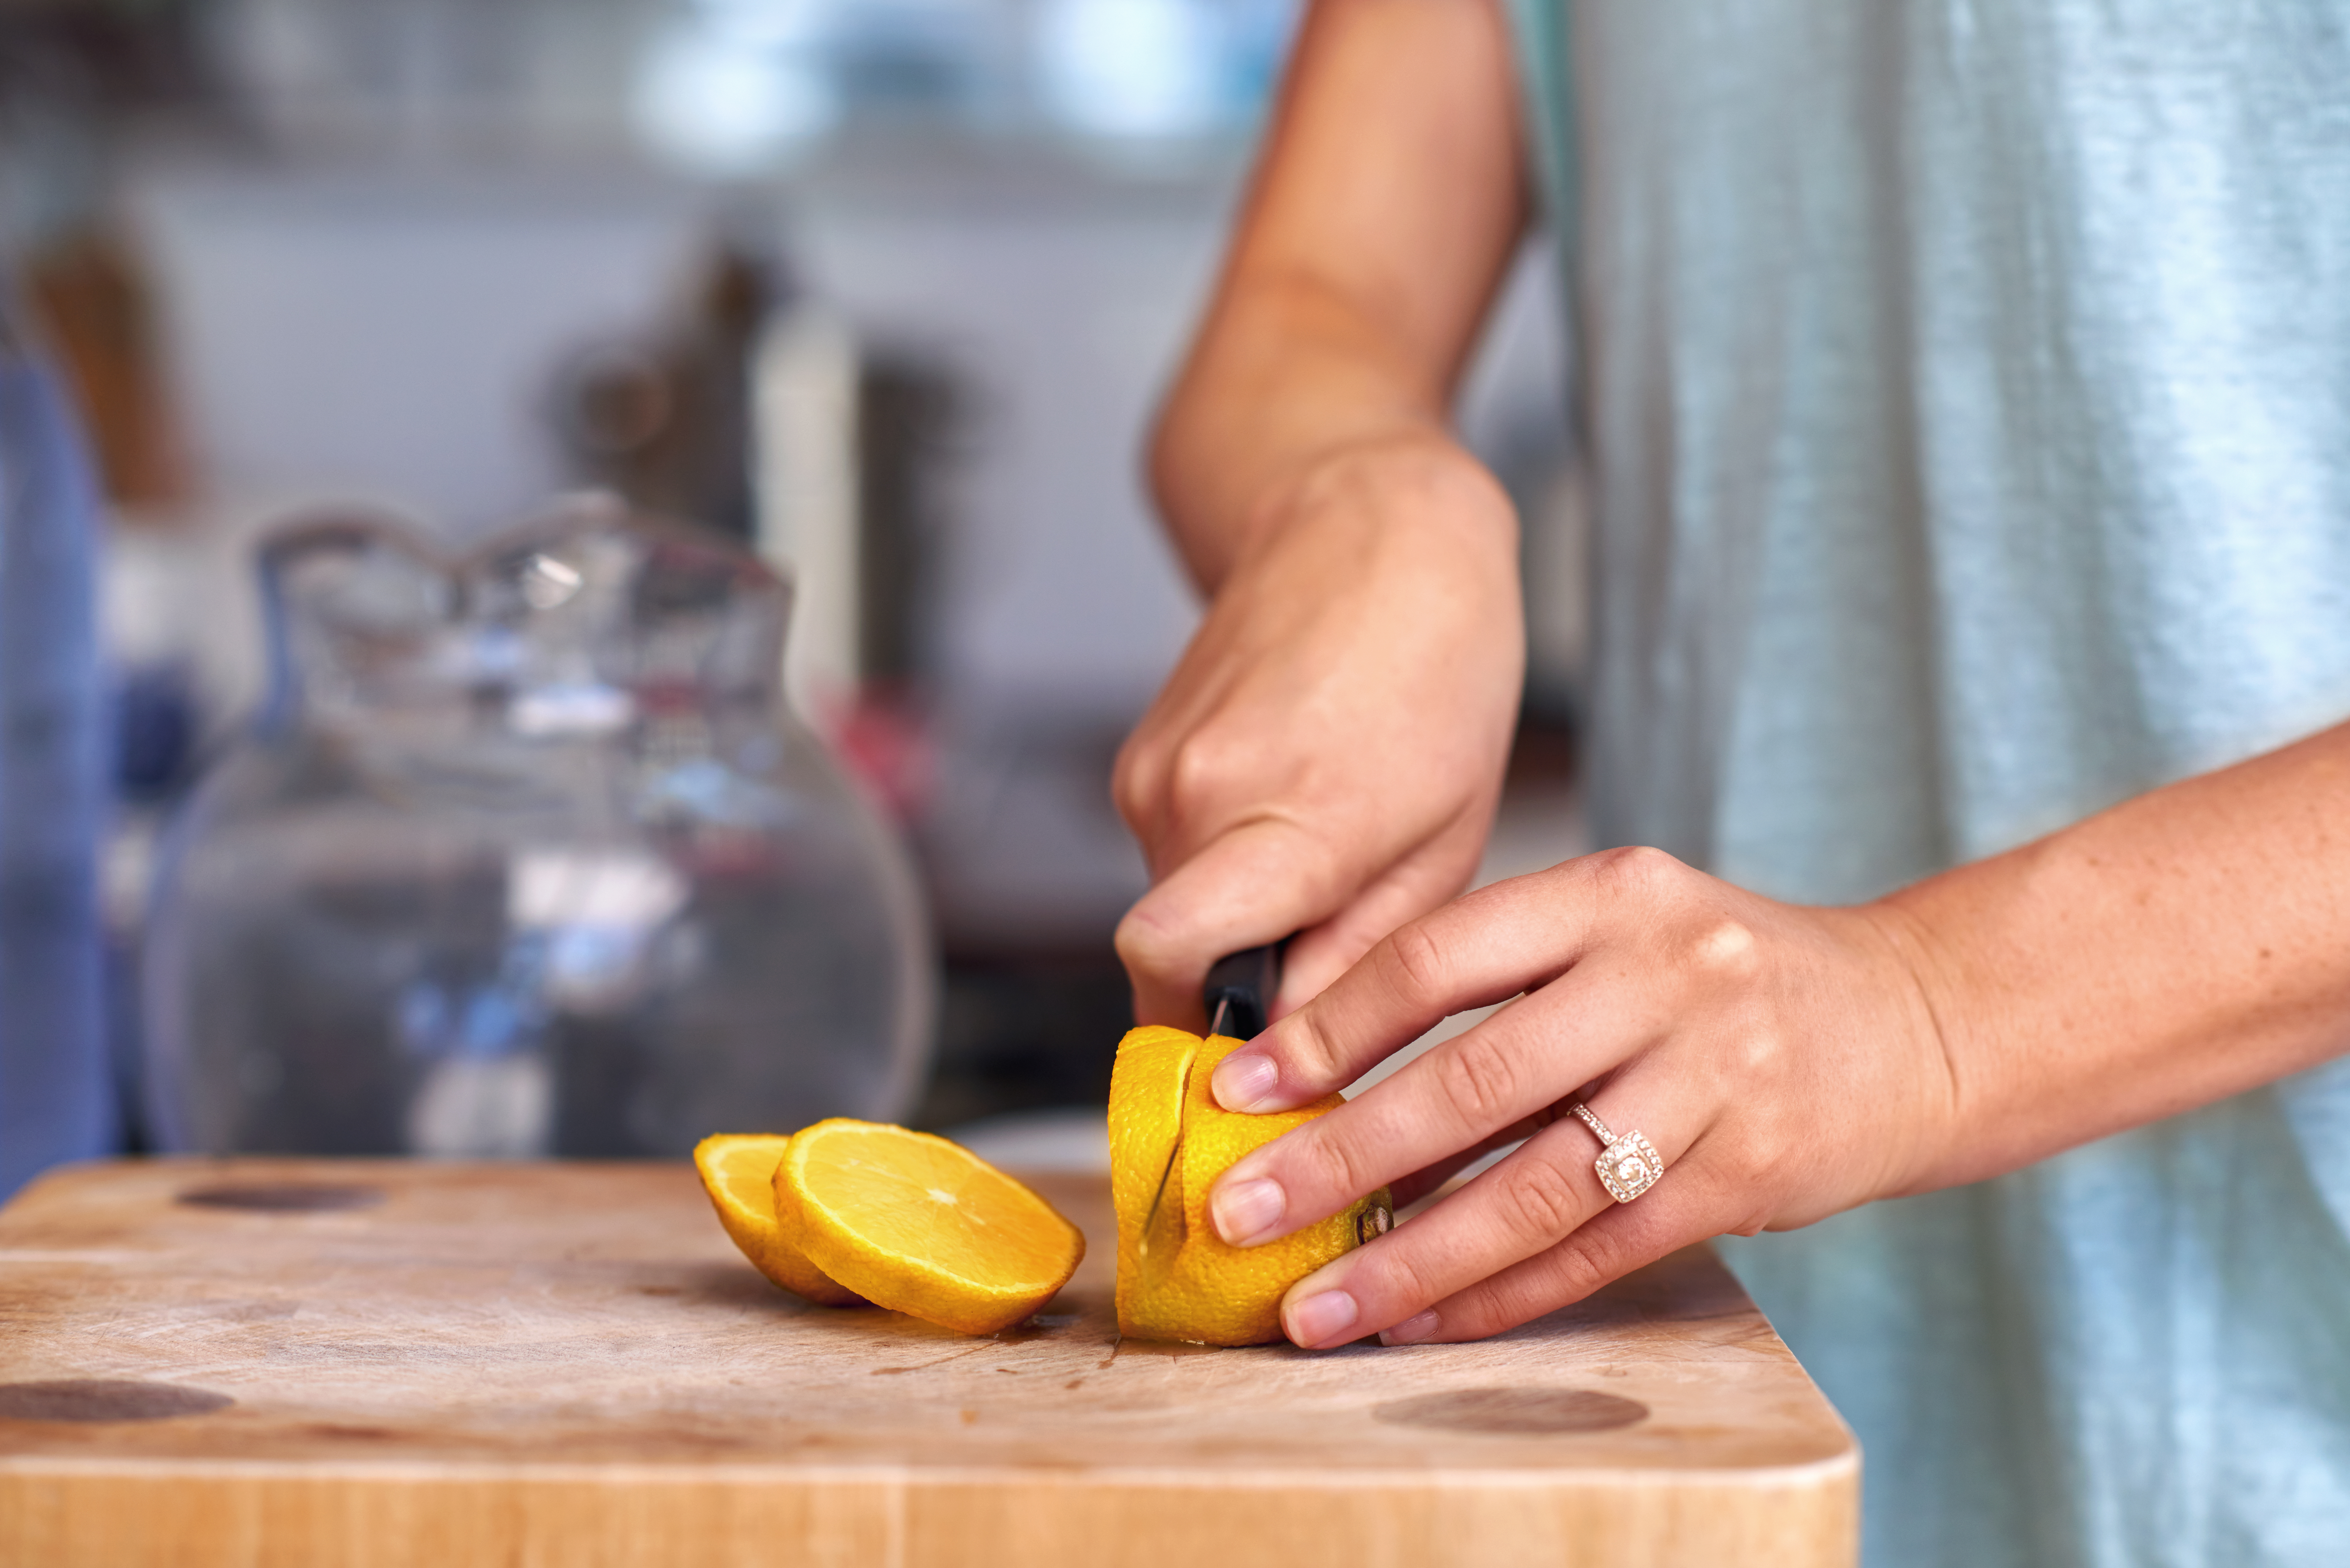 How to Remove Citrus Smell From Hands